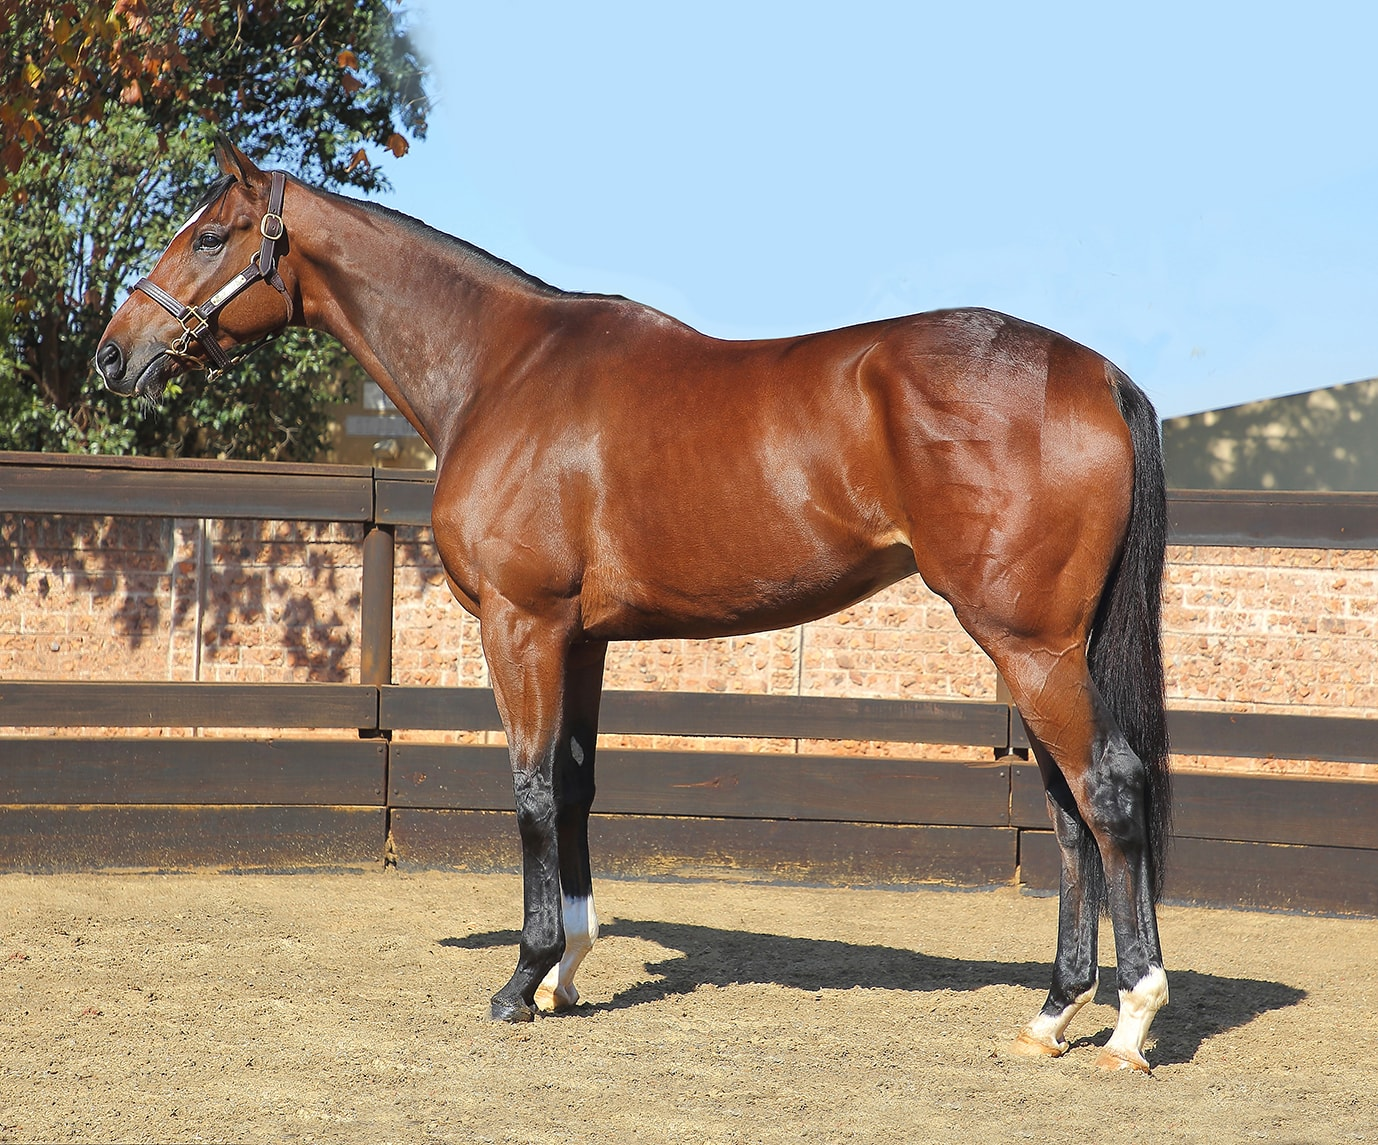 Abashiri - Horse Profile - Breeder: Lammerskraal Stud - Sire: Go Deputy (USA) - Dam: Donya by Elliodor (FR) -  (photo credit: Gold Circle)